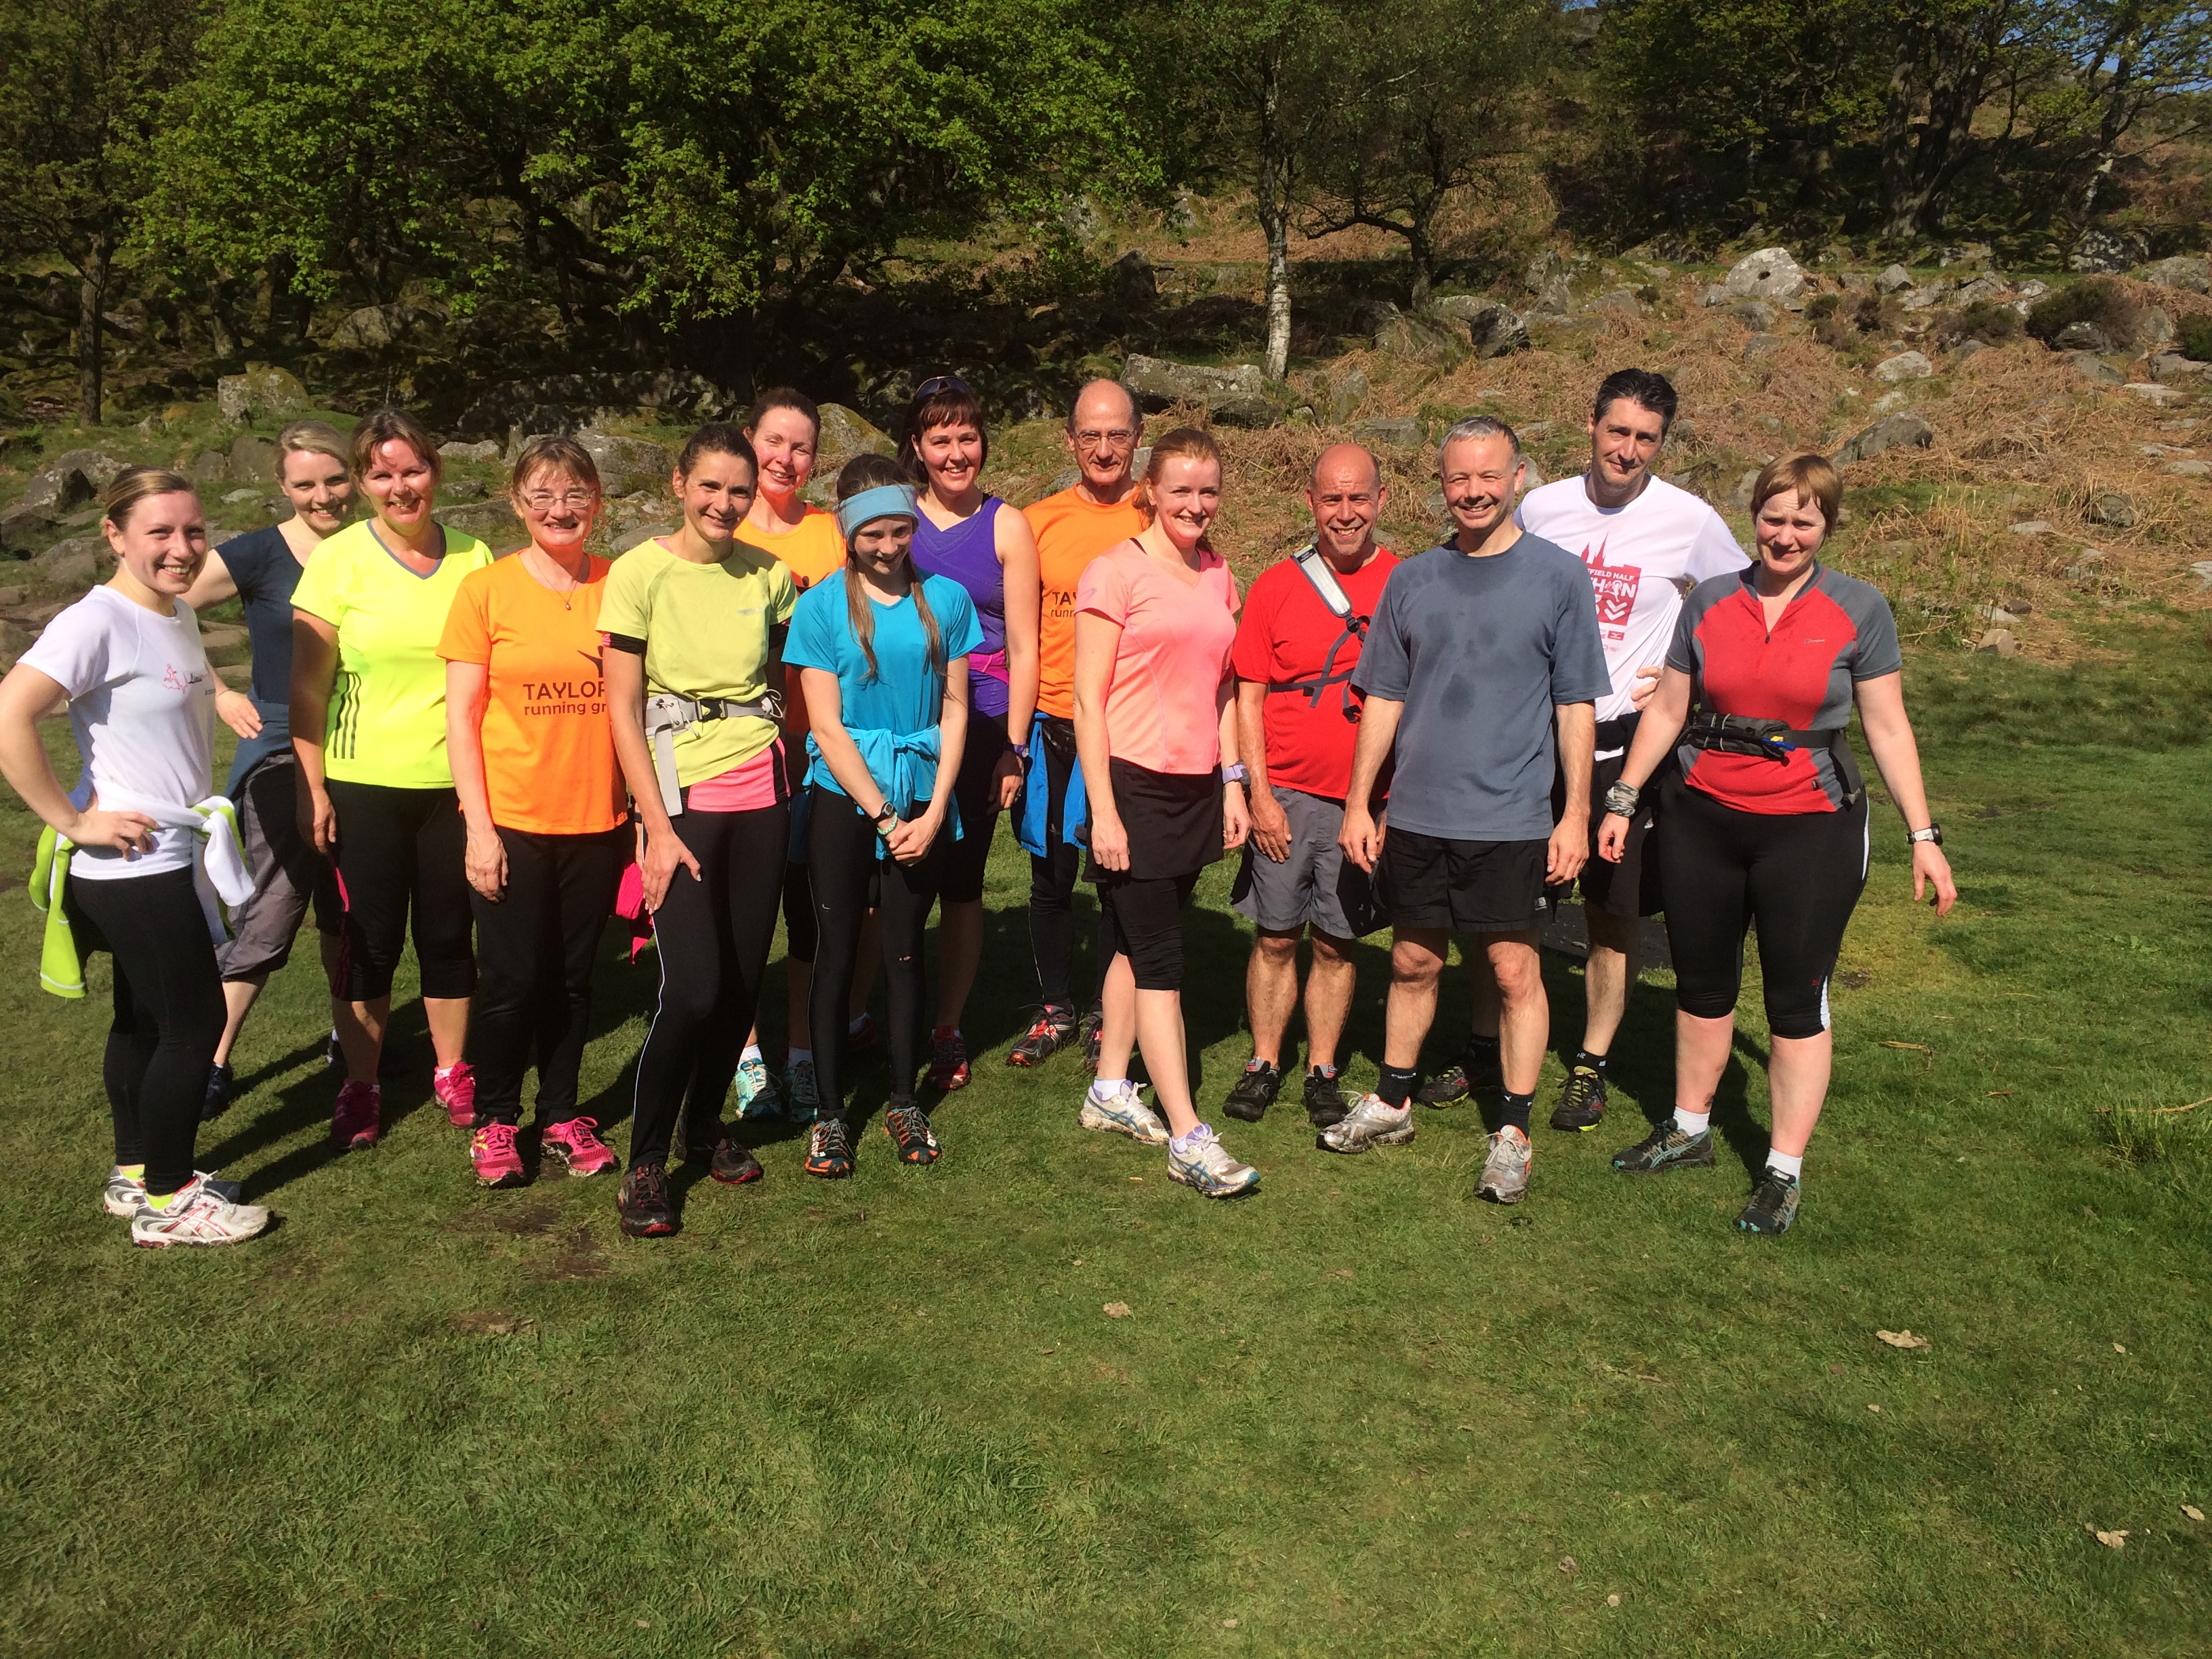 Taylored Running Group - fell running